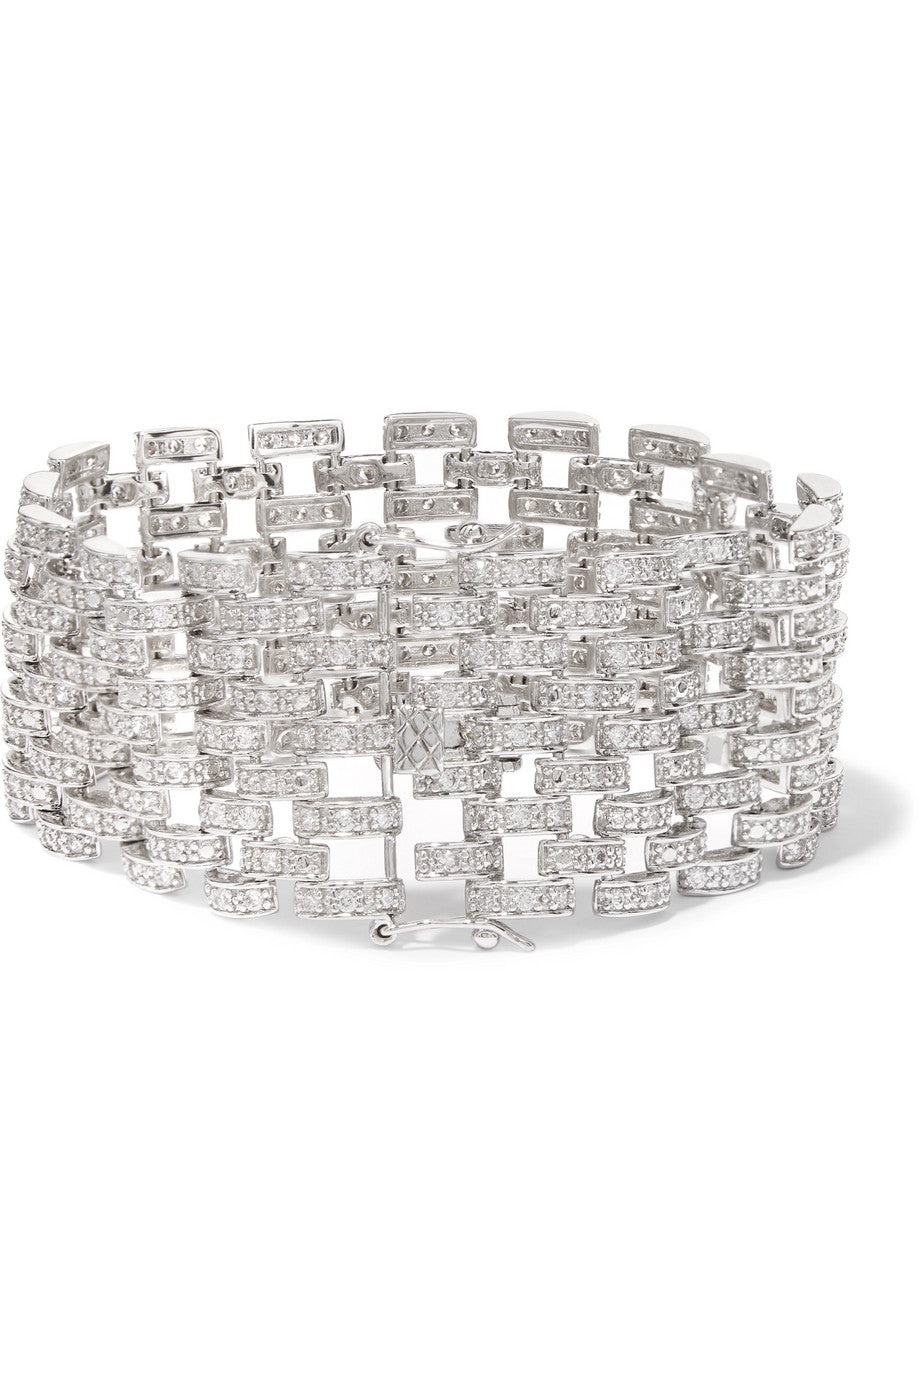 KENNETH JAY LANE Rhodium-plated cubic zirconia bracelet